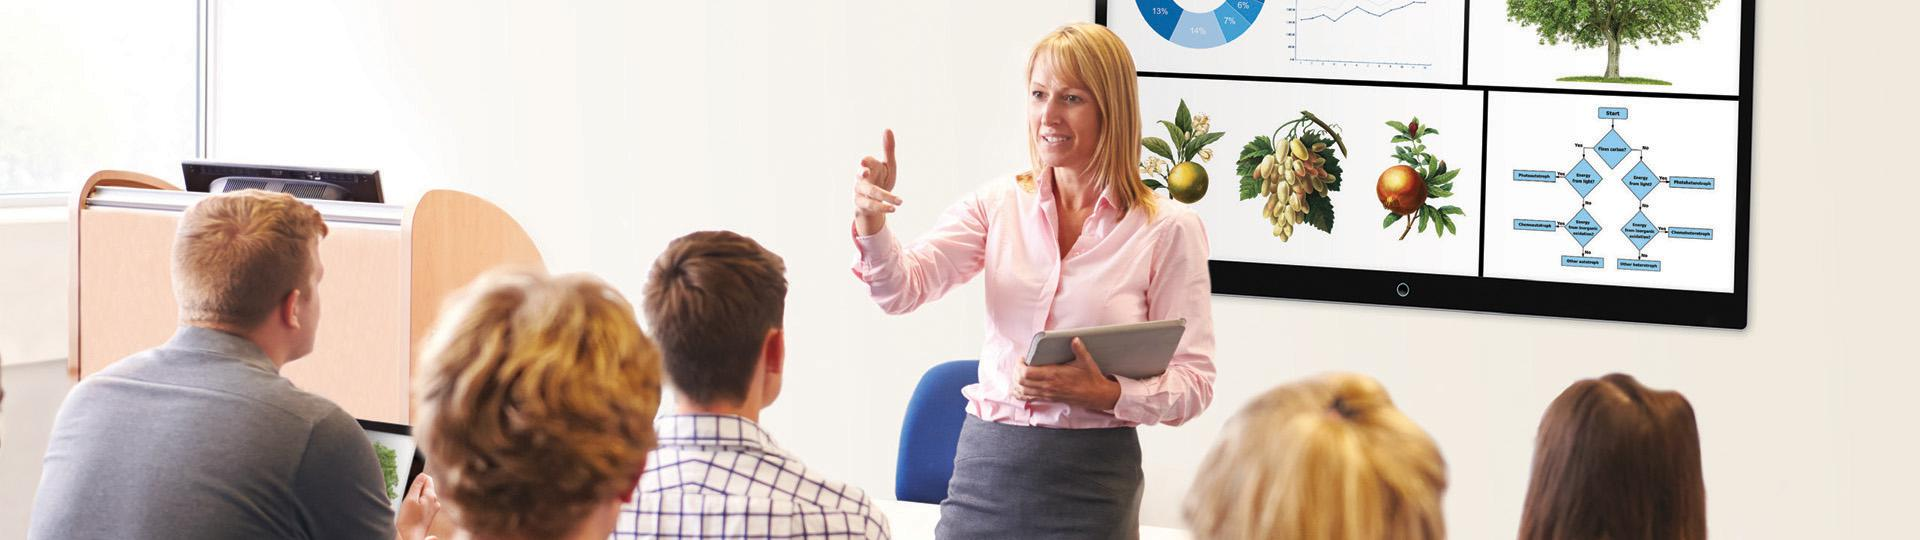 Presentation & collaboration solutions for education